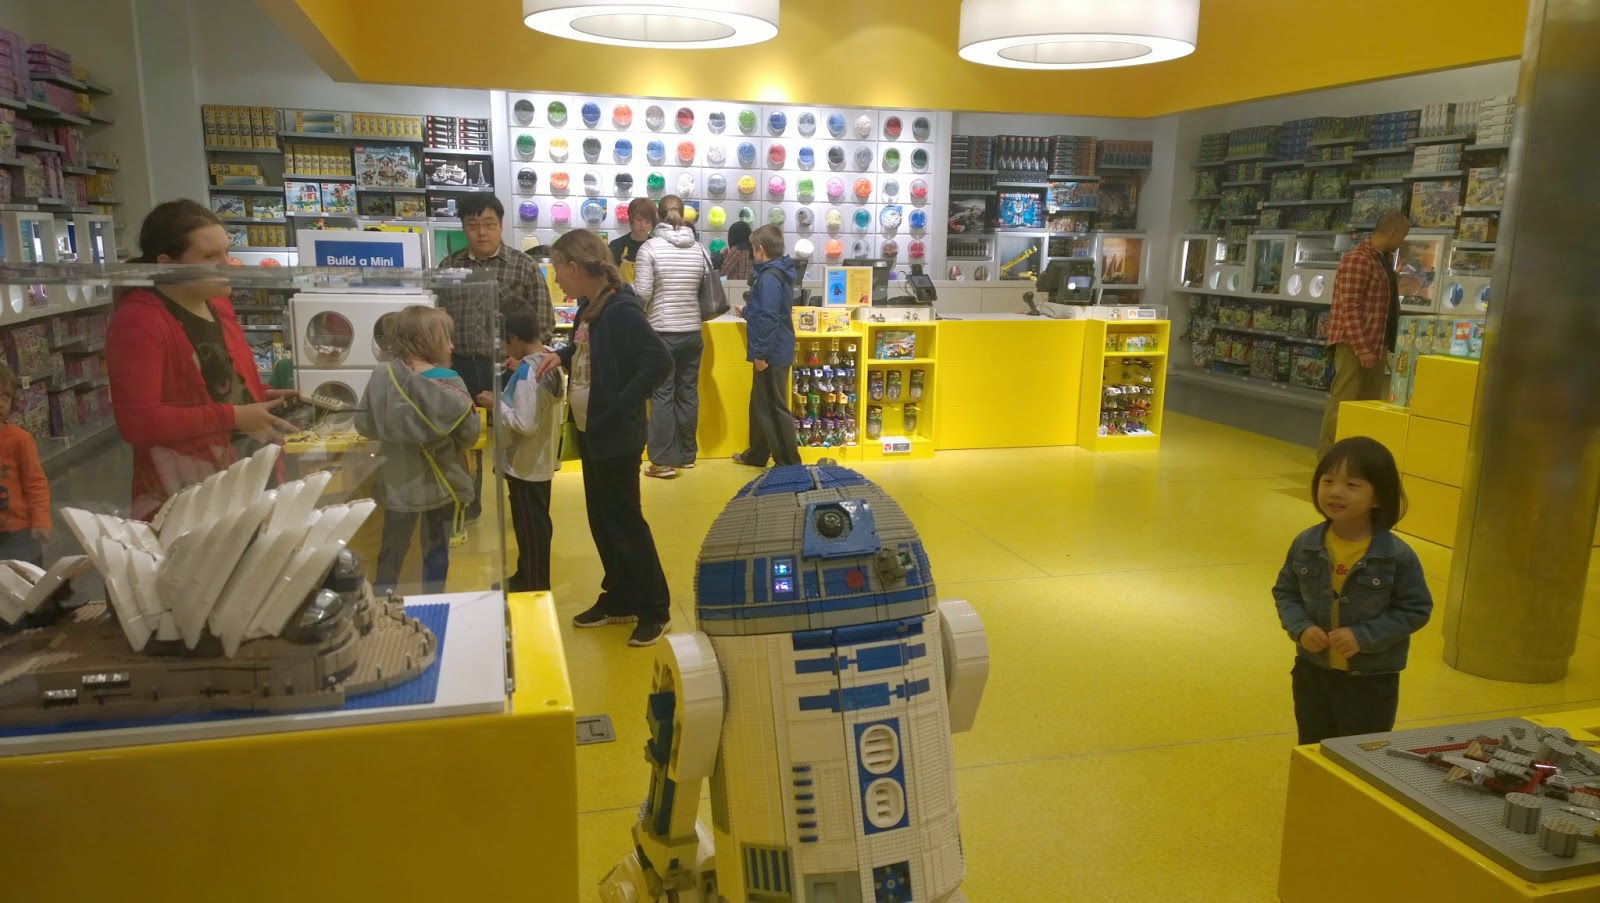 L3-G0 the Lego R2-D2 at the Lego Store